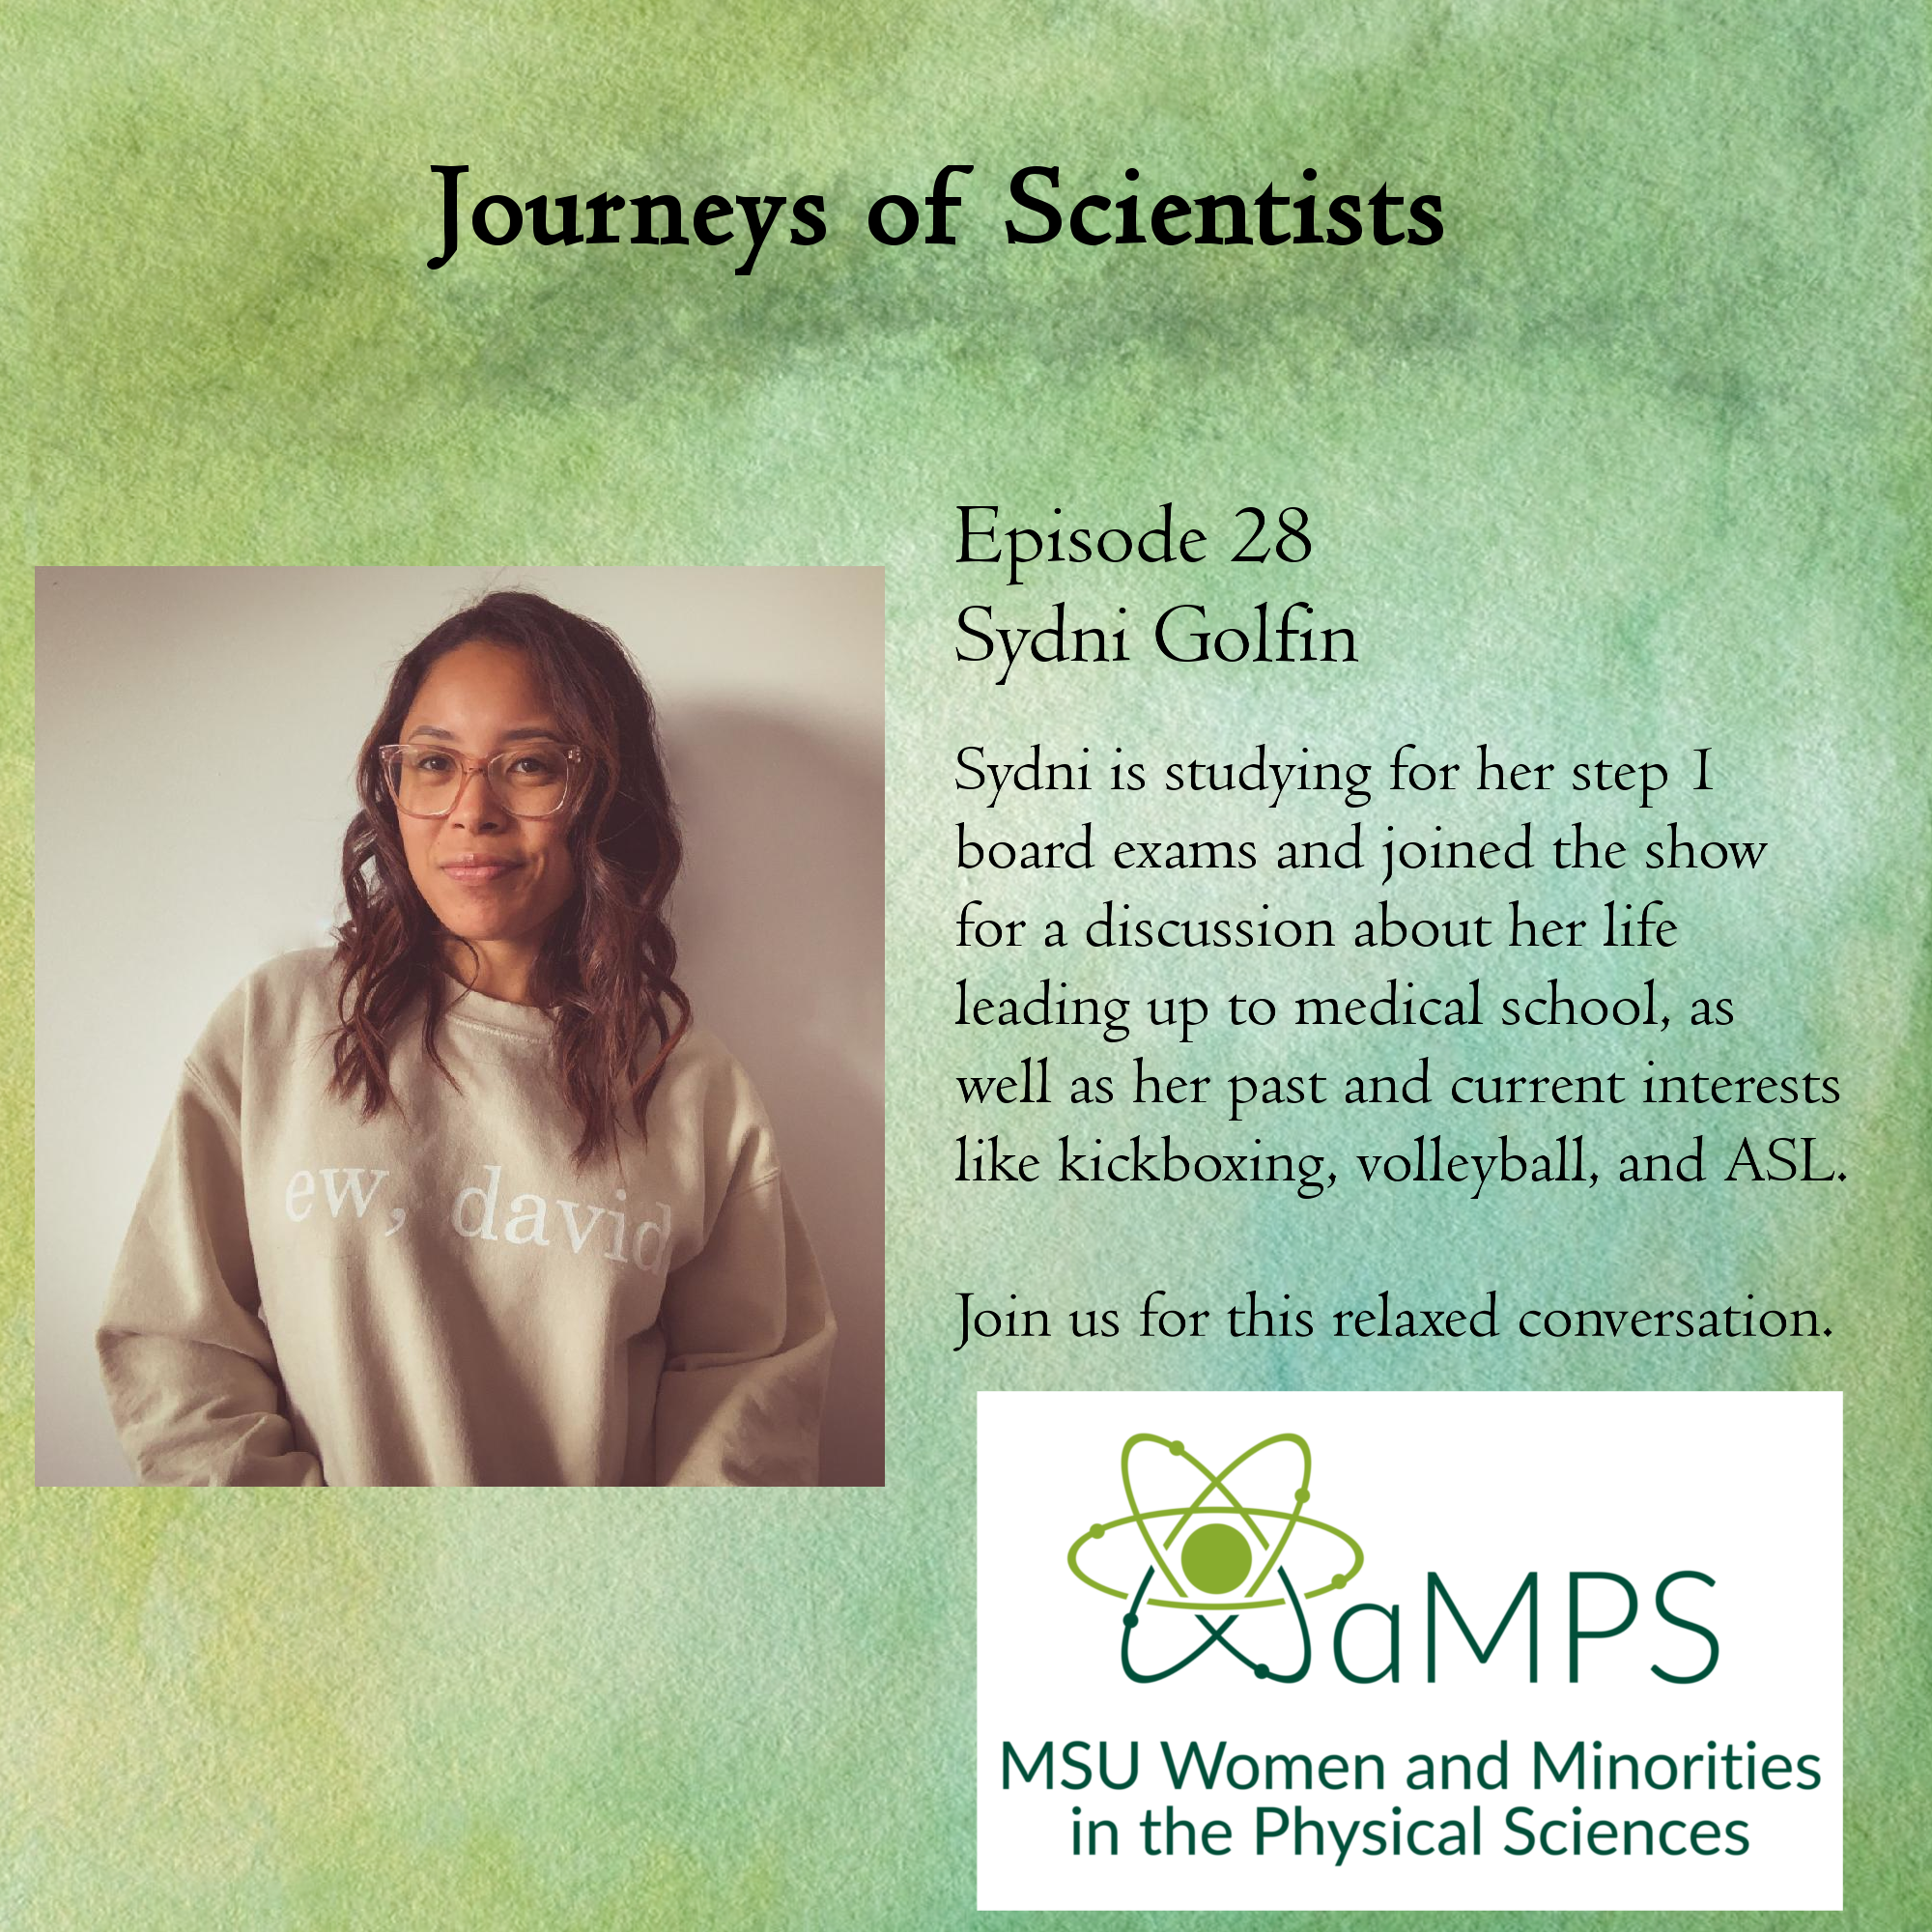 Sydni is an incoming 3rd year medical student at MSUCOM currently studying for her Level 1/Step 1 board exams. She will begin her rotations at Garden City Hospital later this summer with interests in women's health and community medicine.